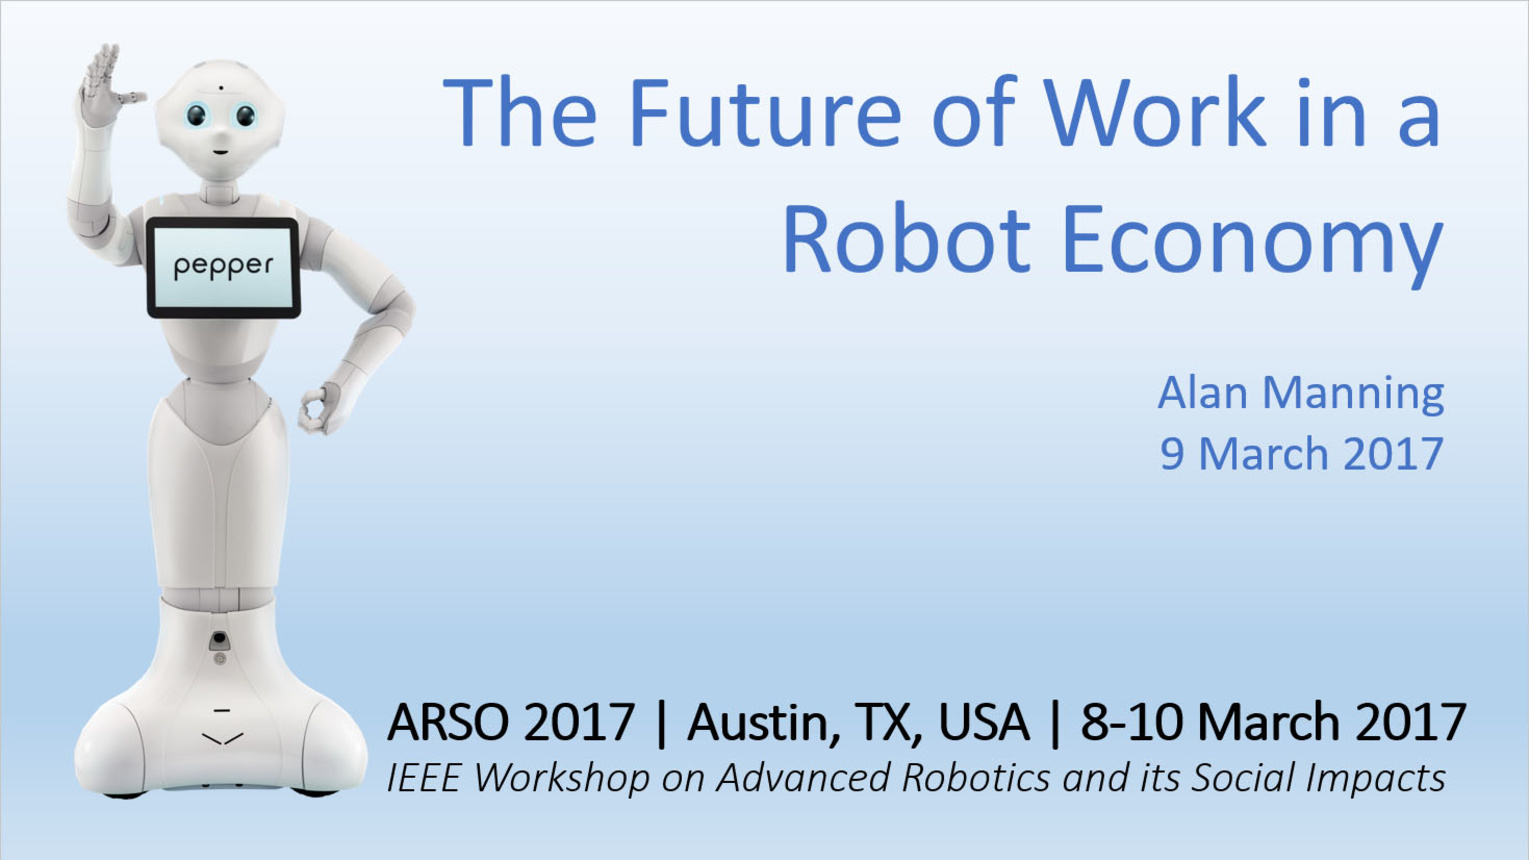 The Future of Work on a Robot Economy